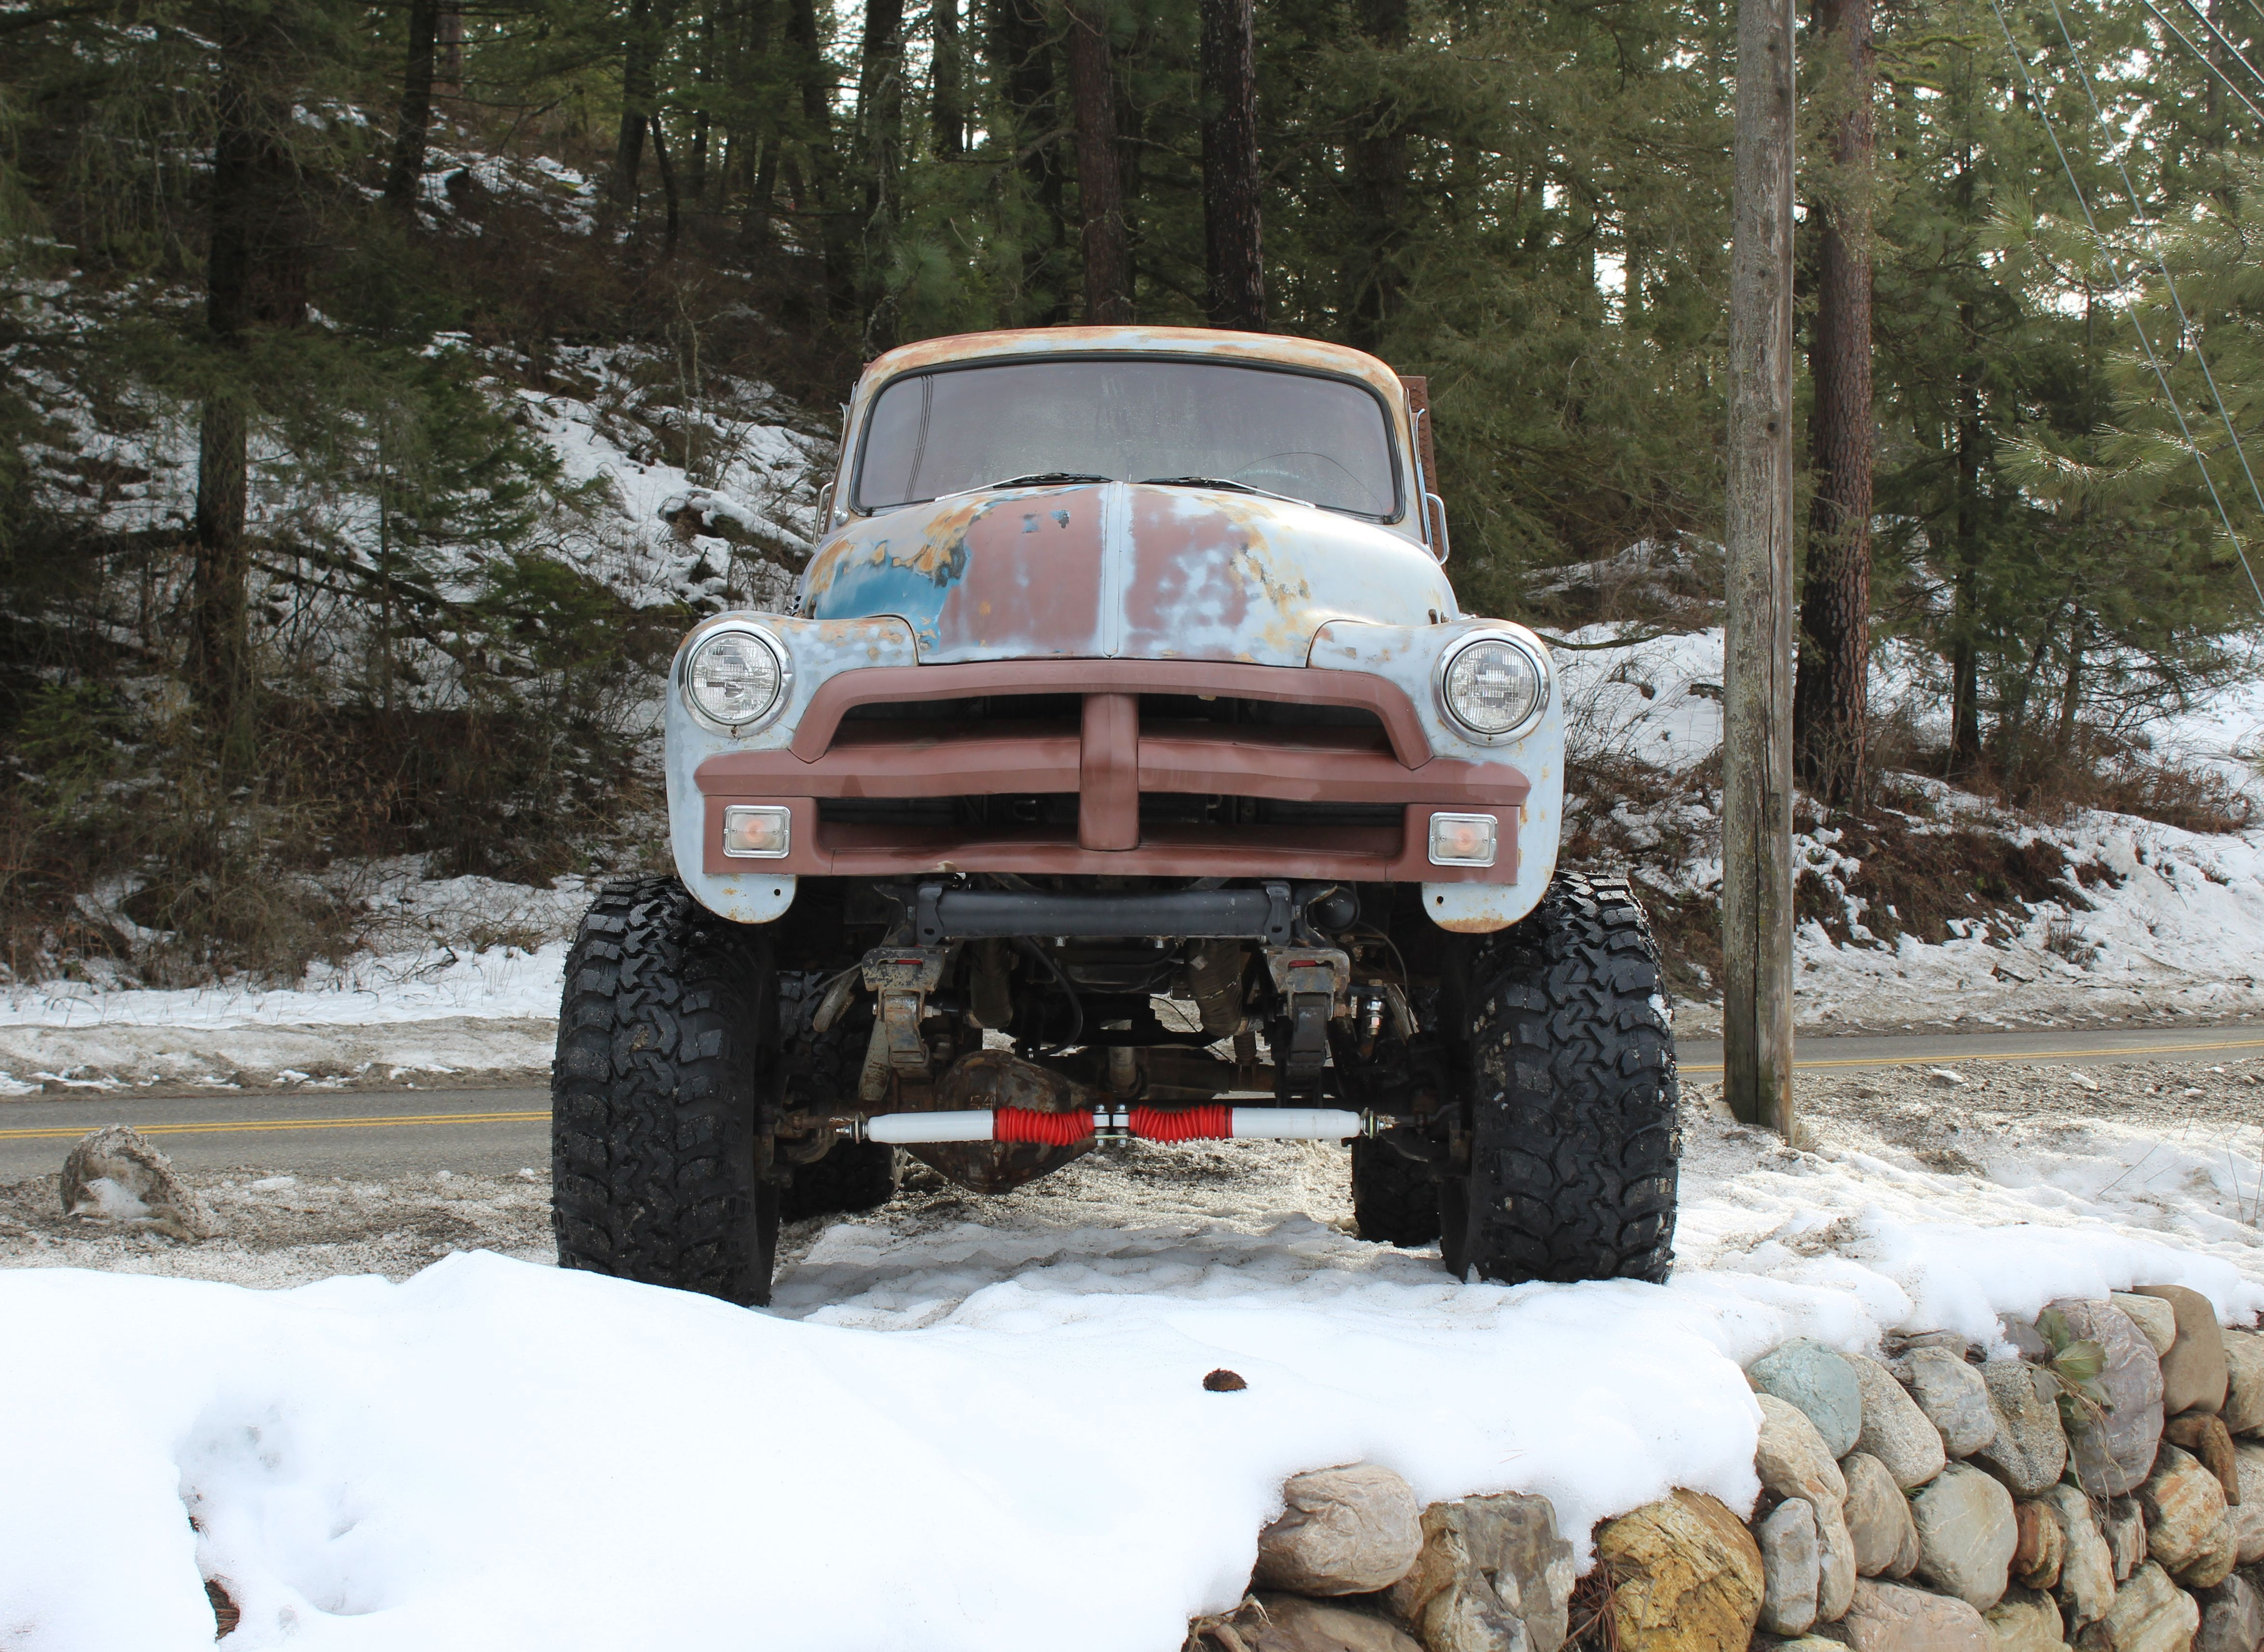 1954 Chevy 1 Ton 4 X Rat Rod Flat Bed Truck With 42 Iroks 4x4 For Sale